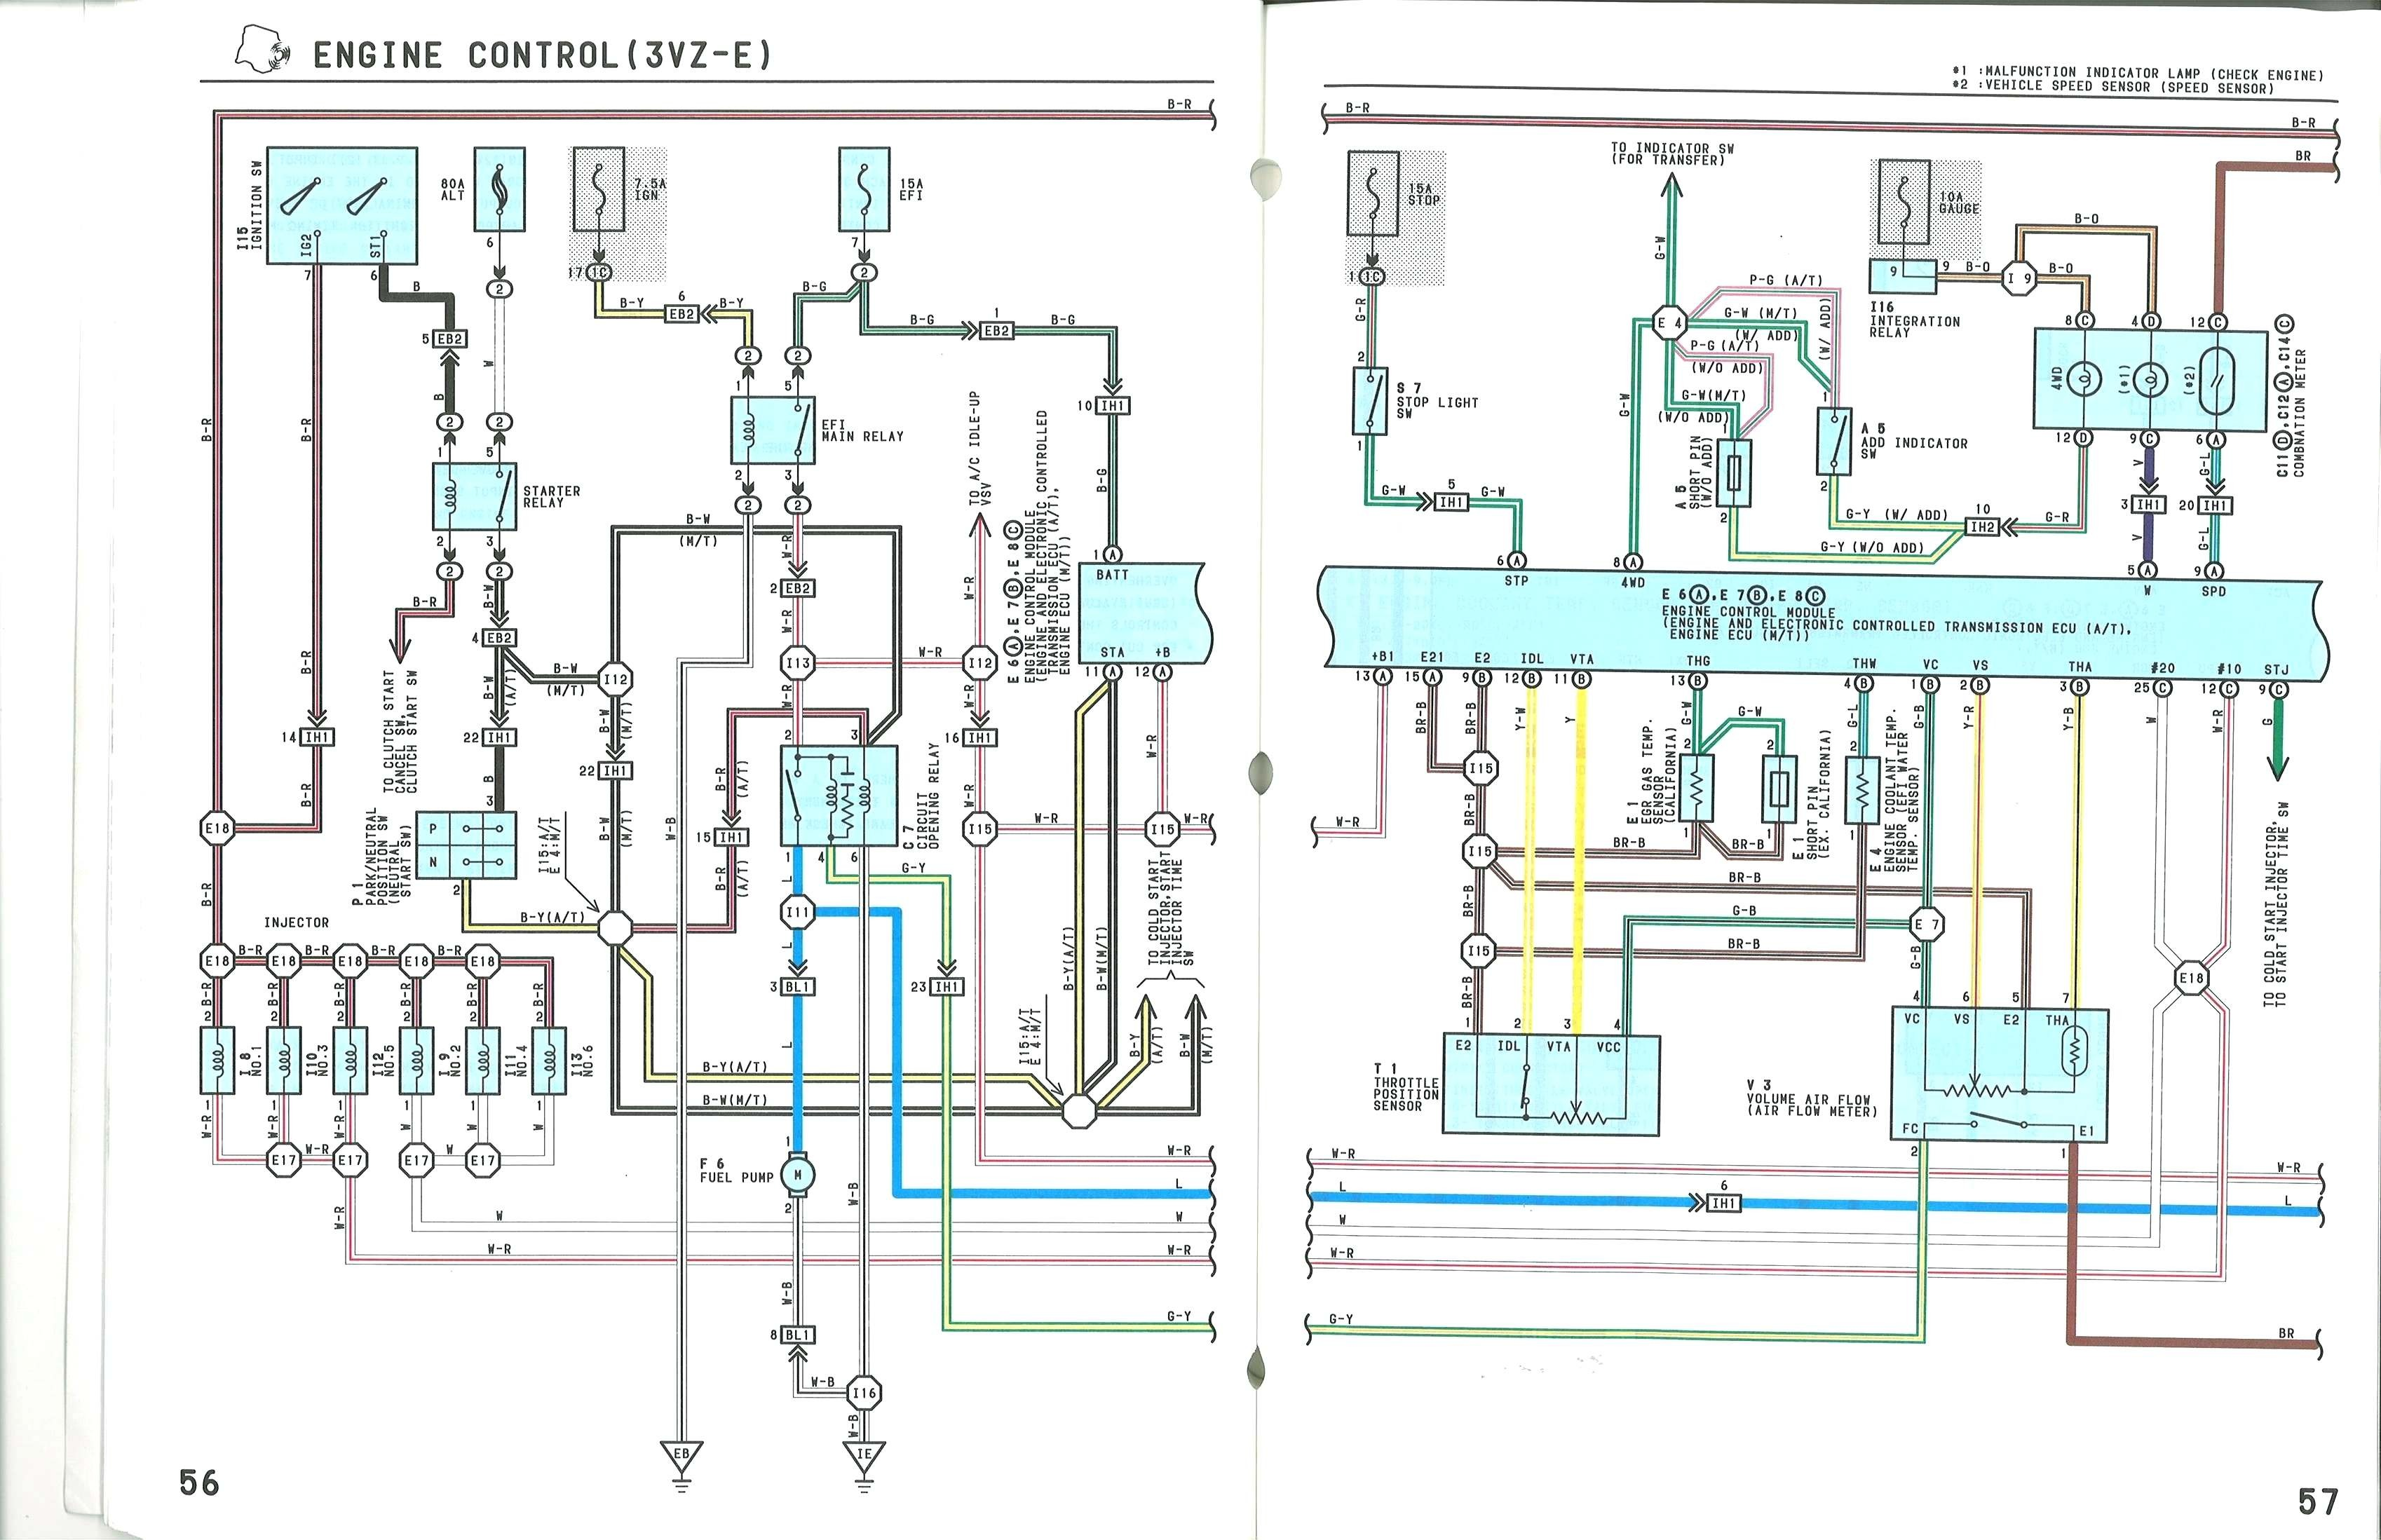 94 toyota pickup wiring diagram - wiring diagrams site range-data-a -  range-data-a.geasparquet.it  geas parquet